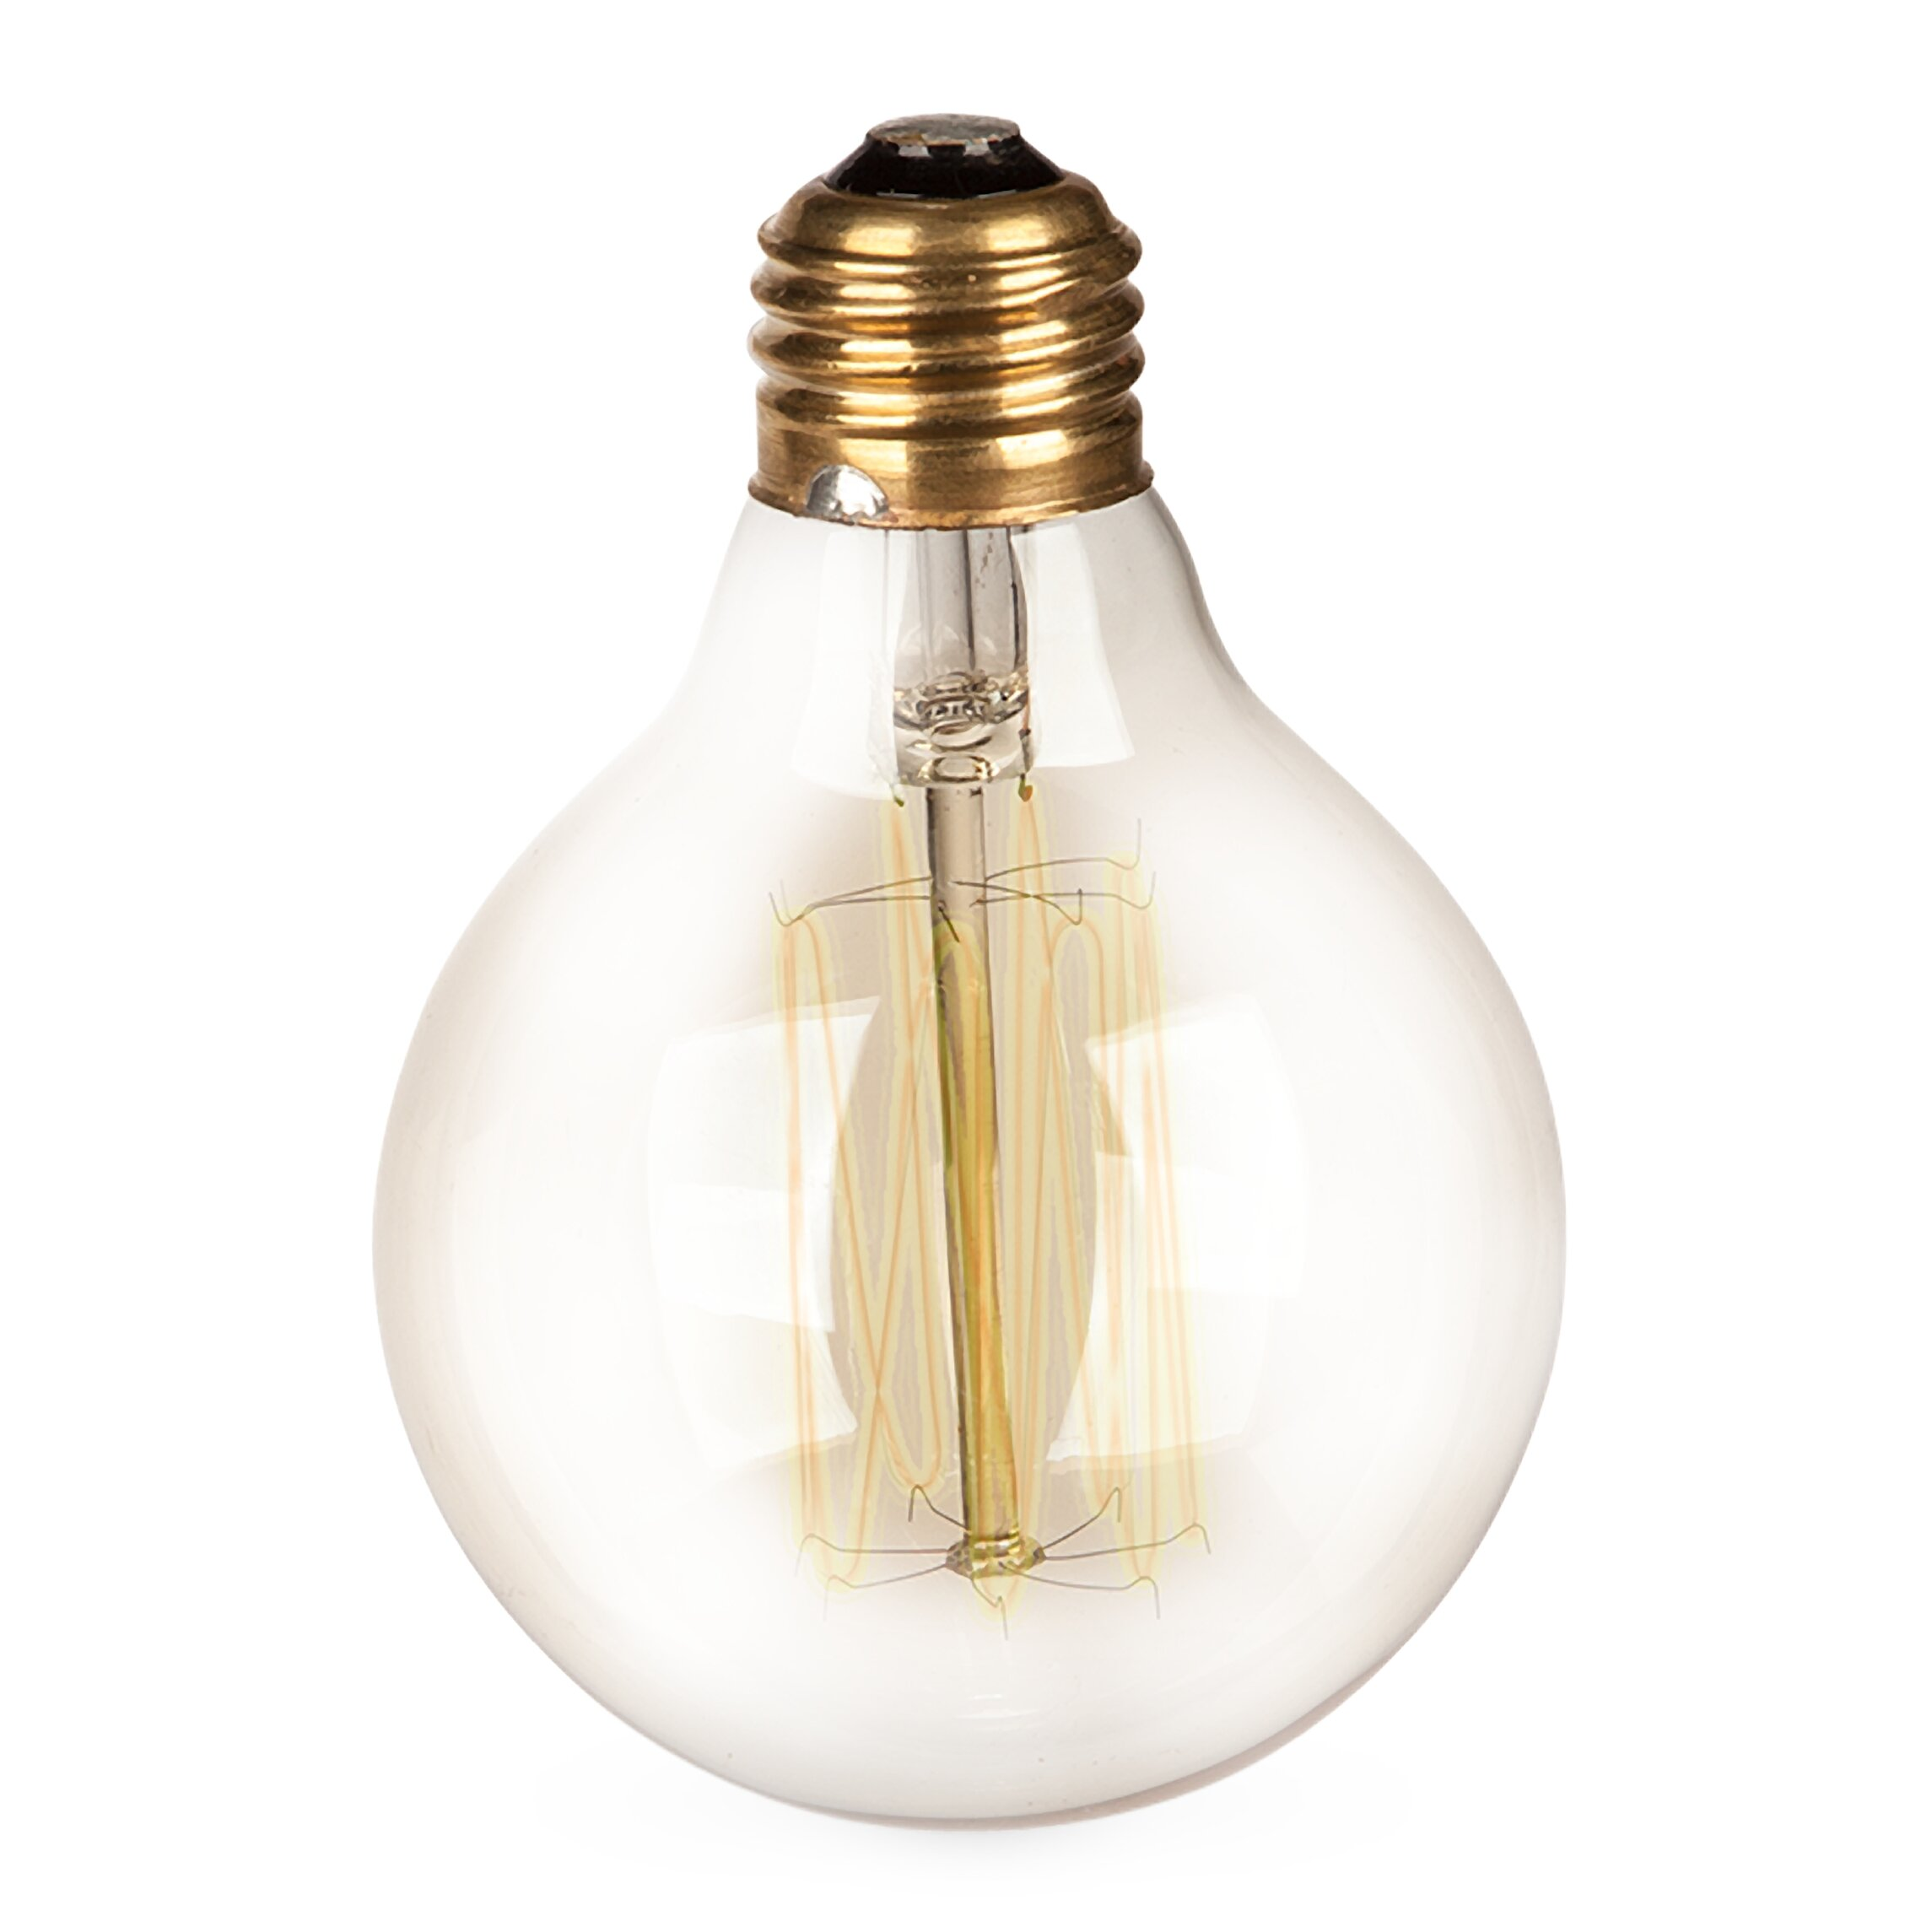 The Gerson Companies 20 Watt Incandescent Light Bulb Wayfair